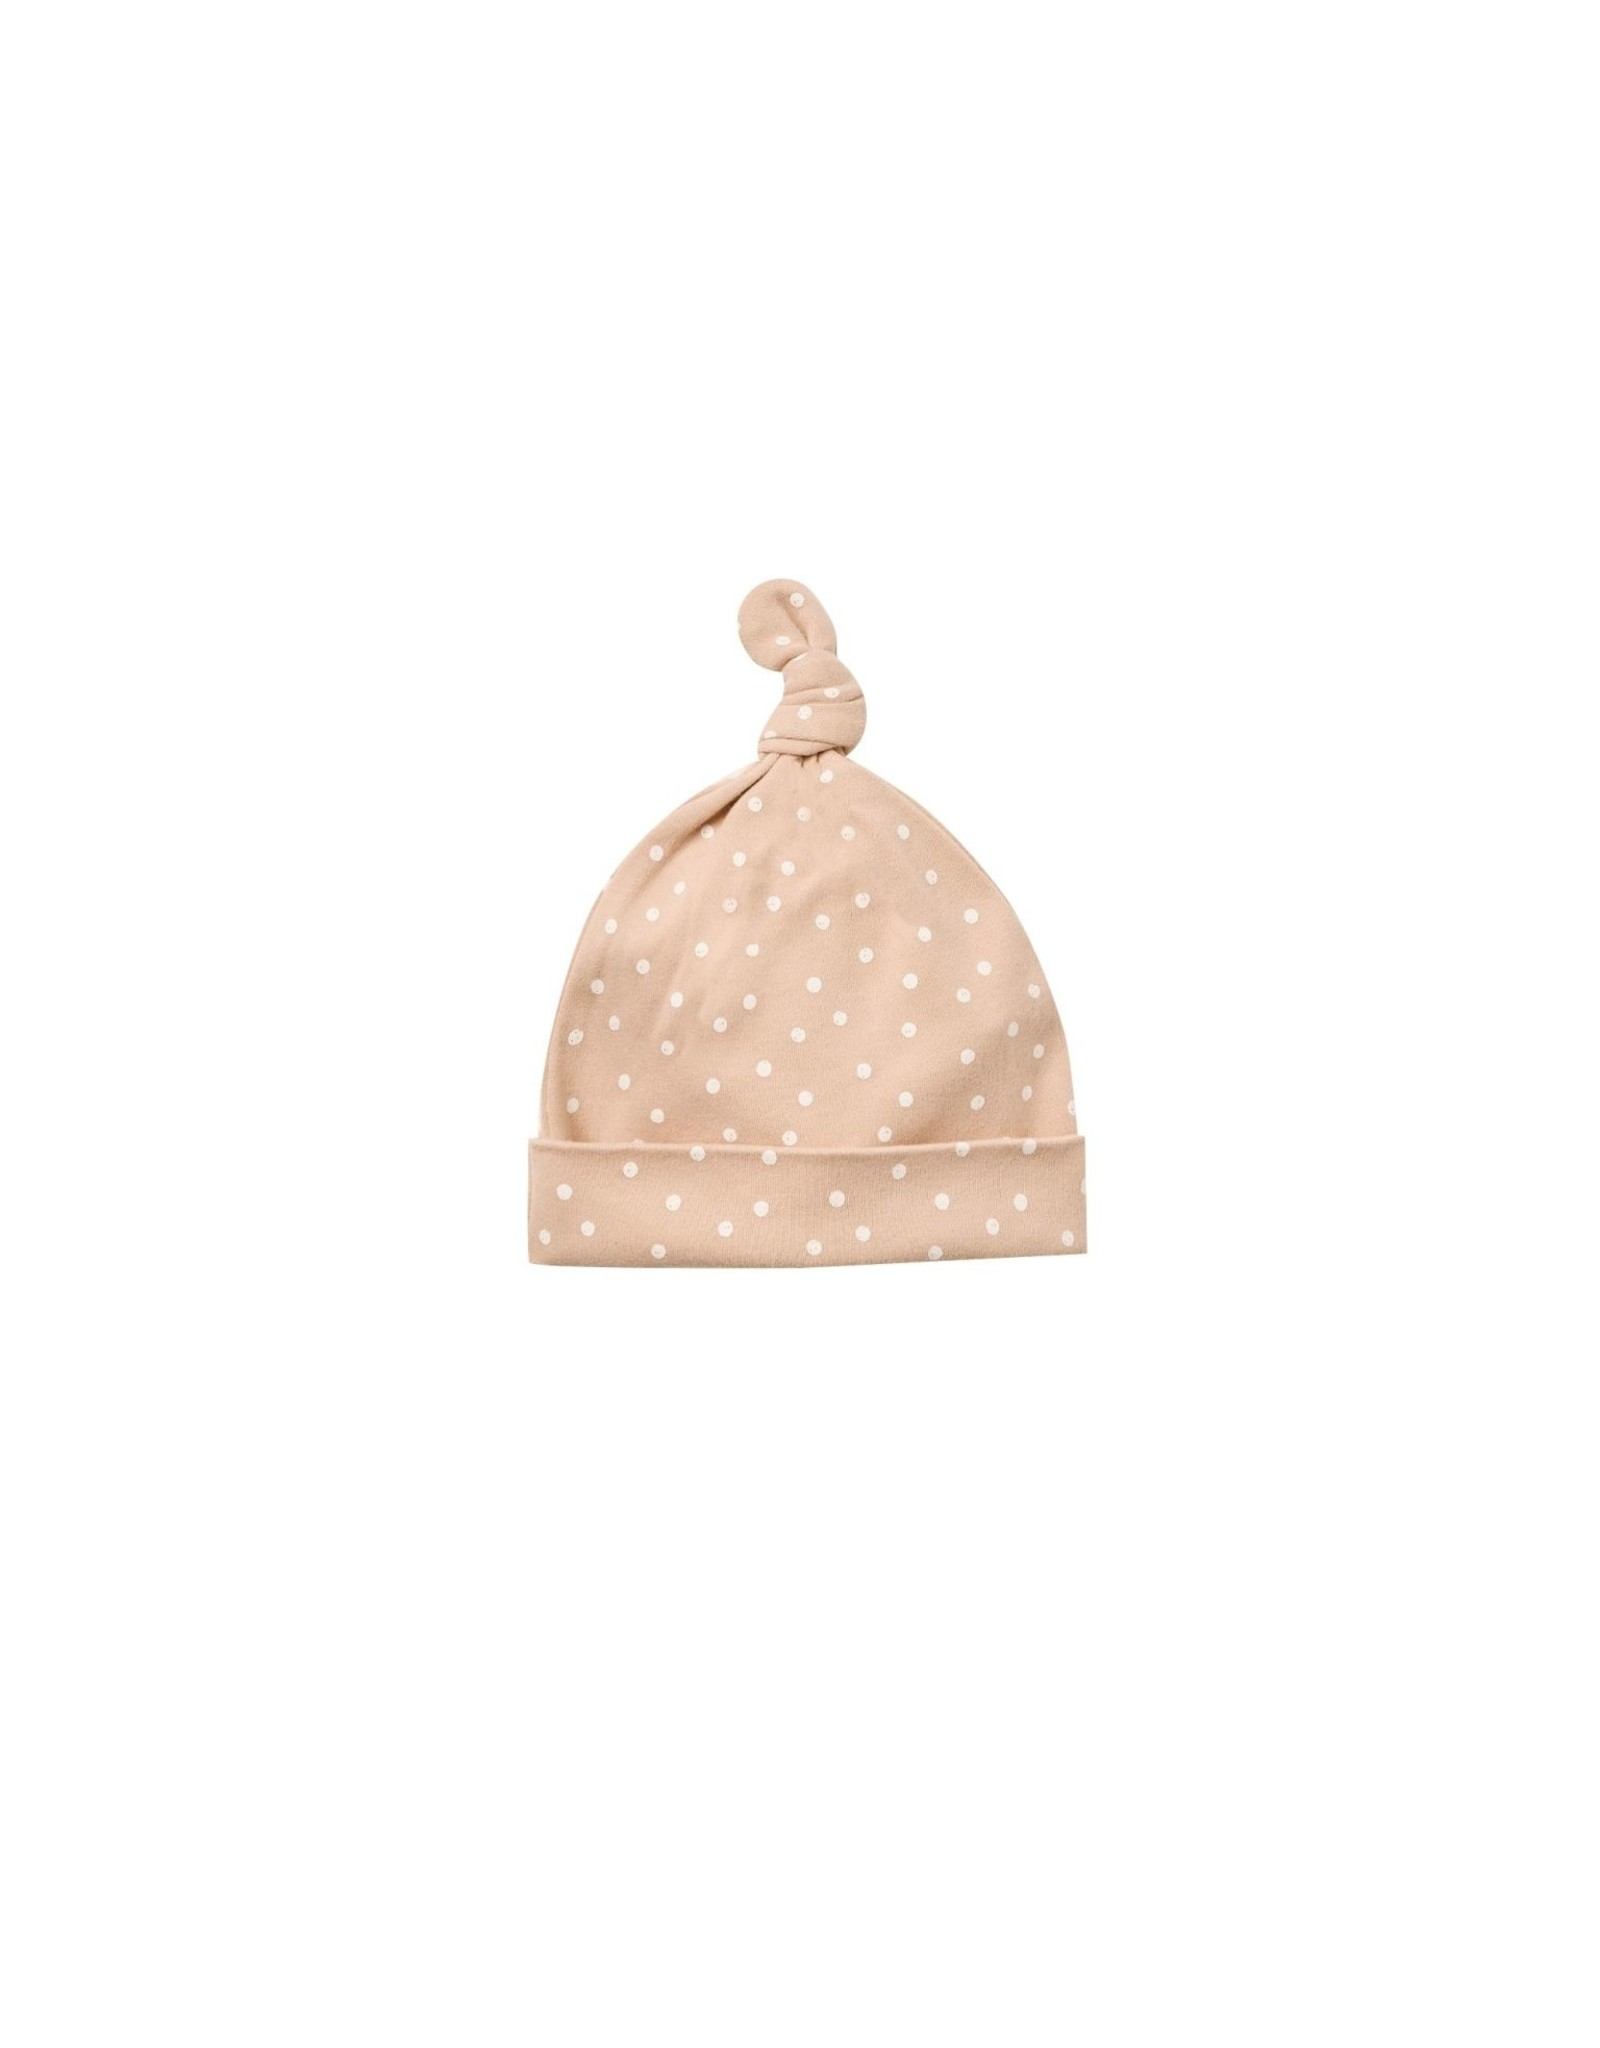 Quincy Mae knotted hat- petal dots